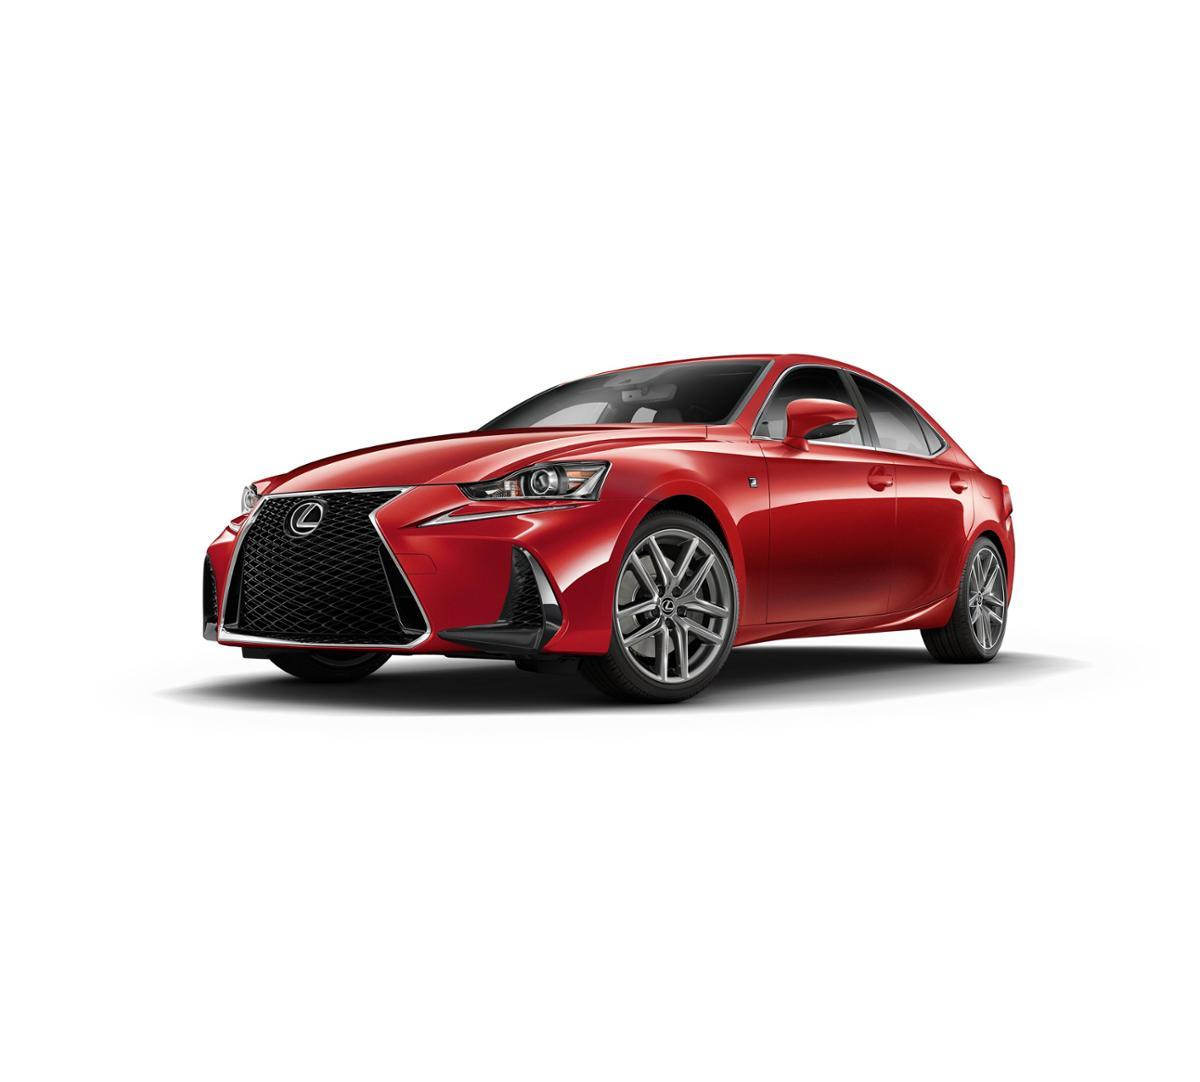 2019 Lexus IS 350 Vehicle Photo in Dallas, TX 75209